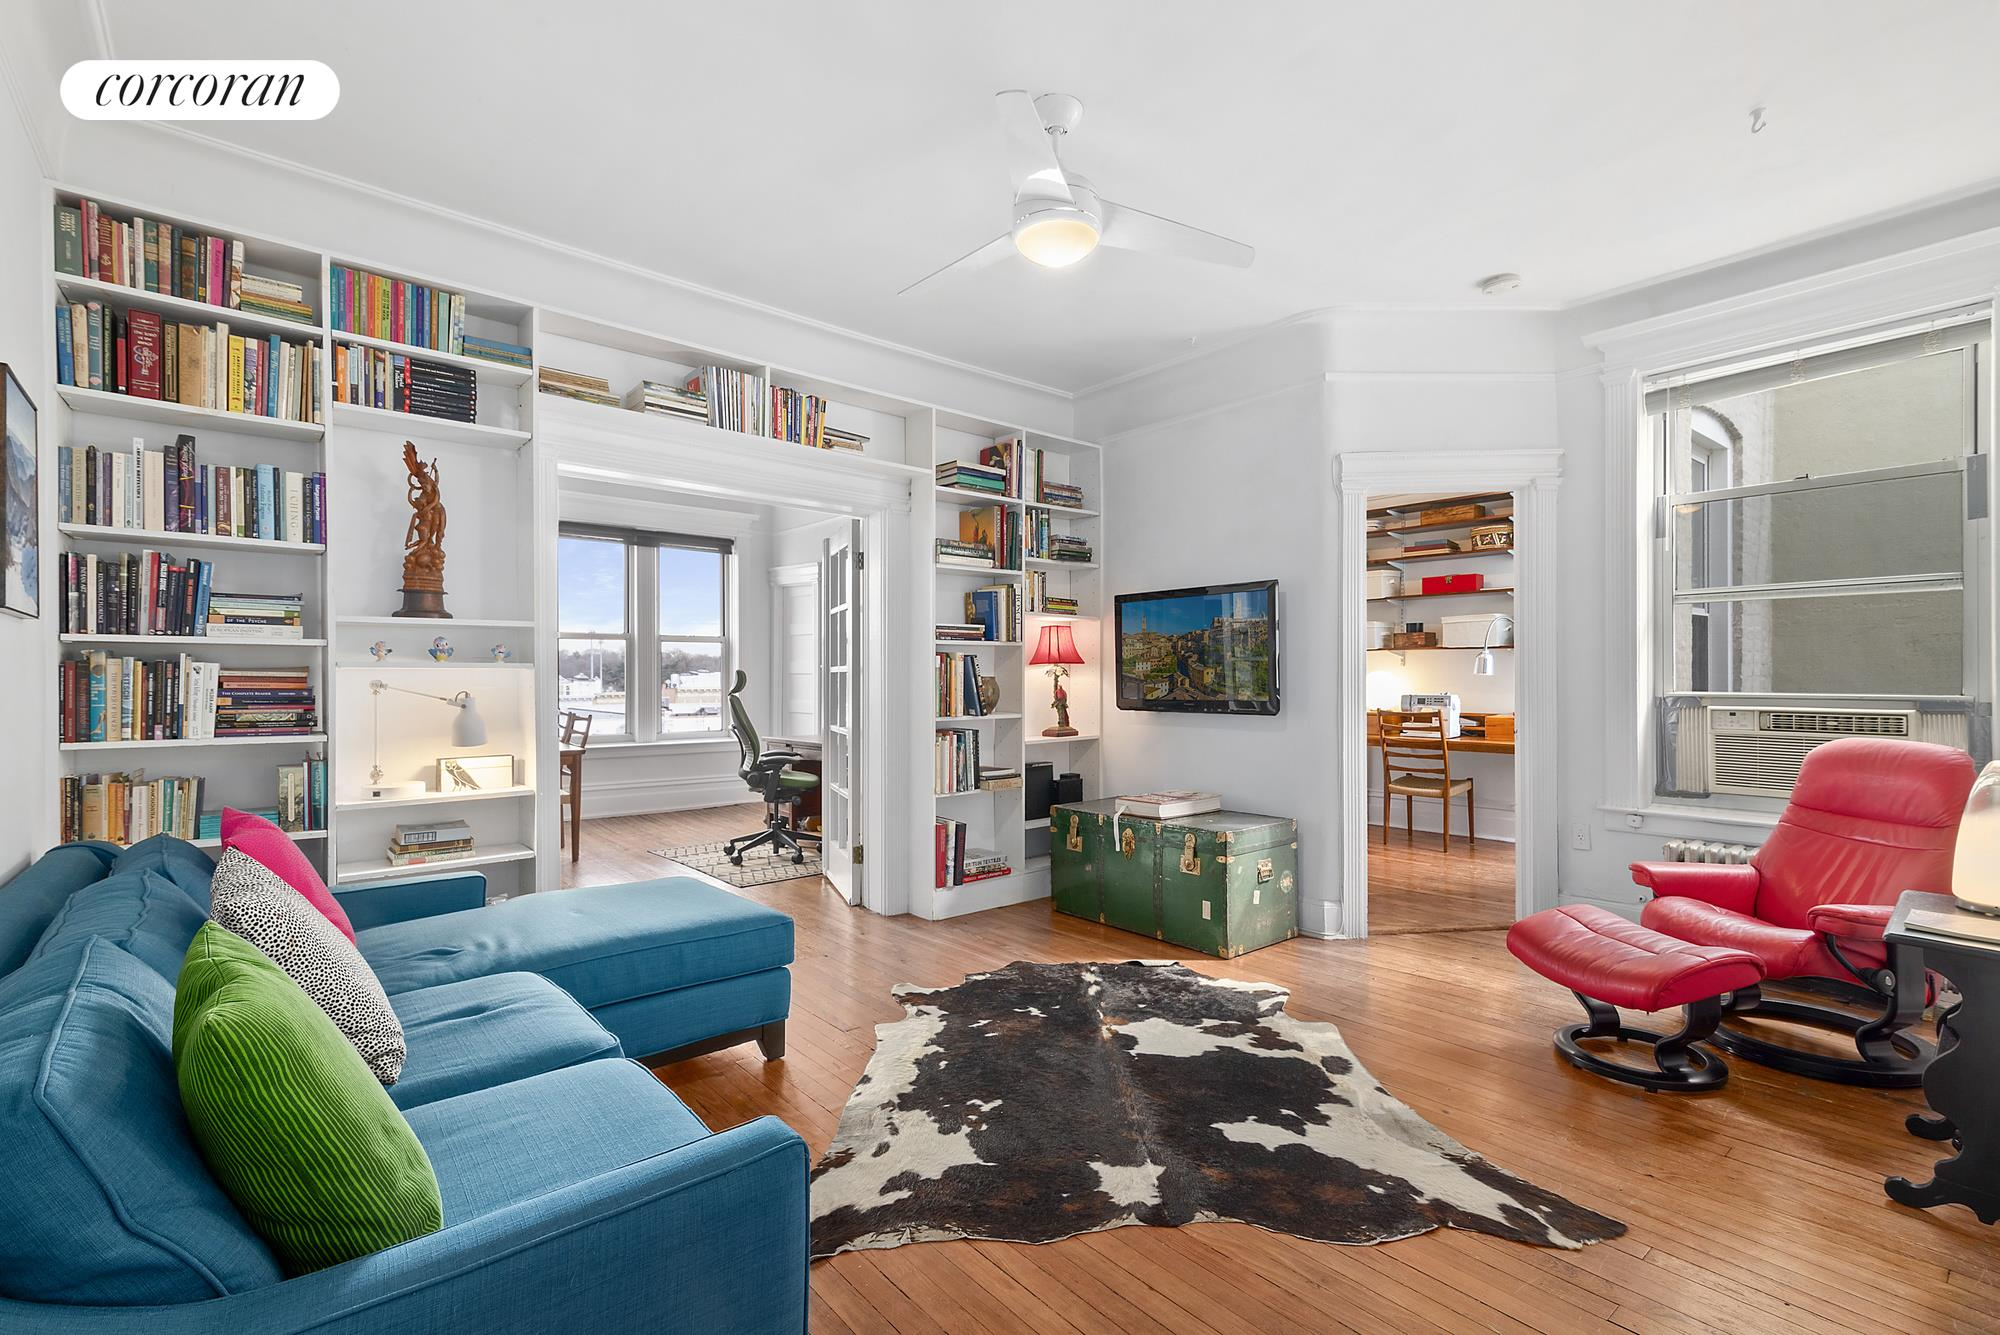 546 40th Street, P, Gorgeous living room with built-in bookshelves